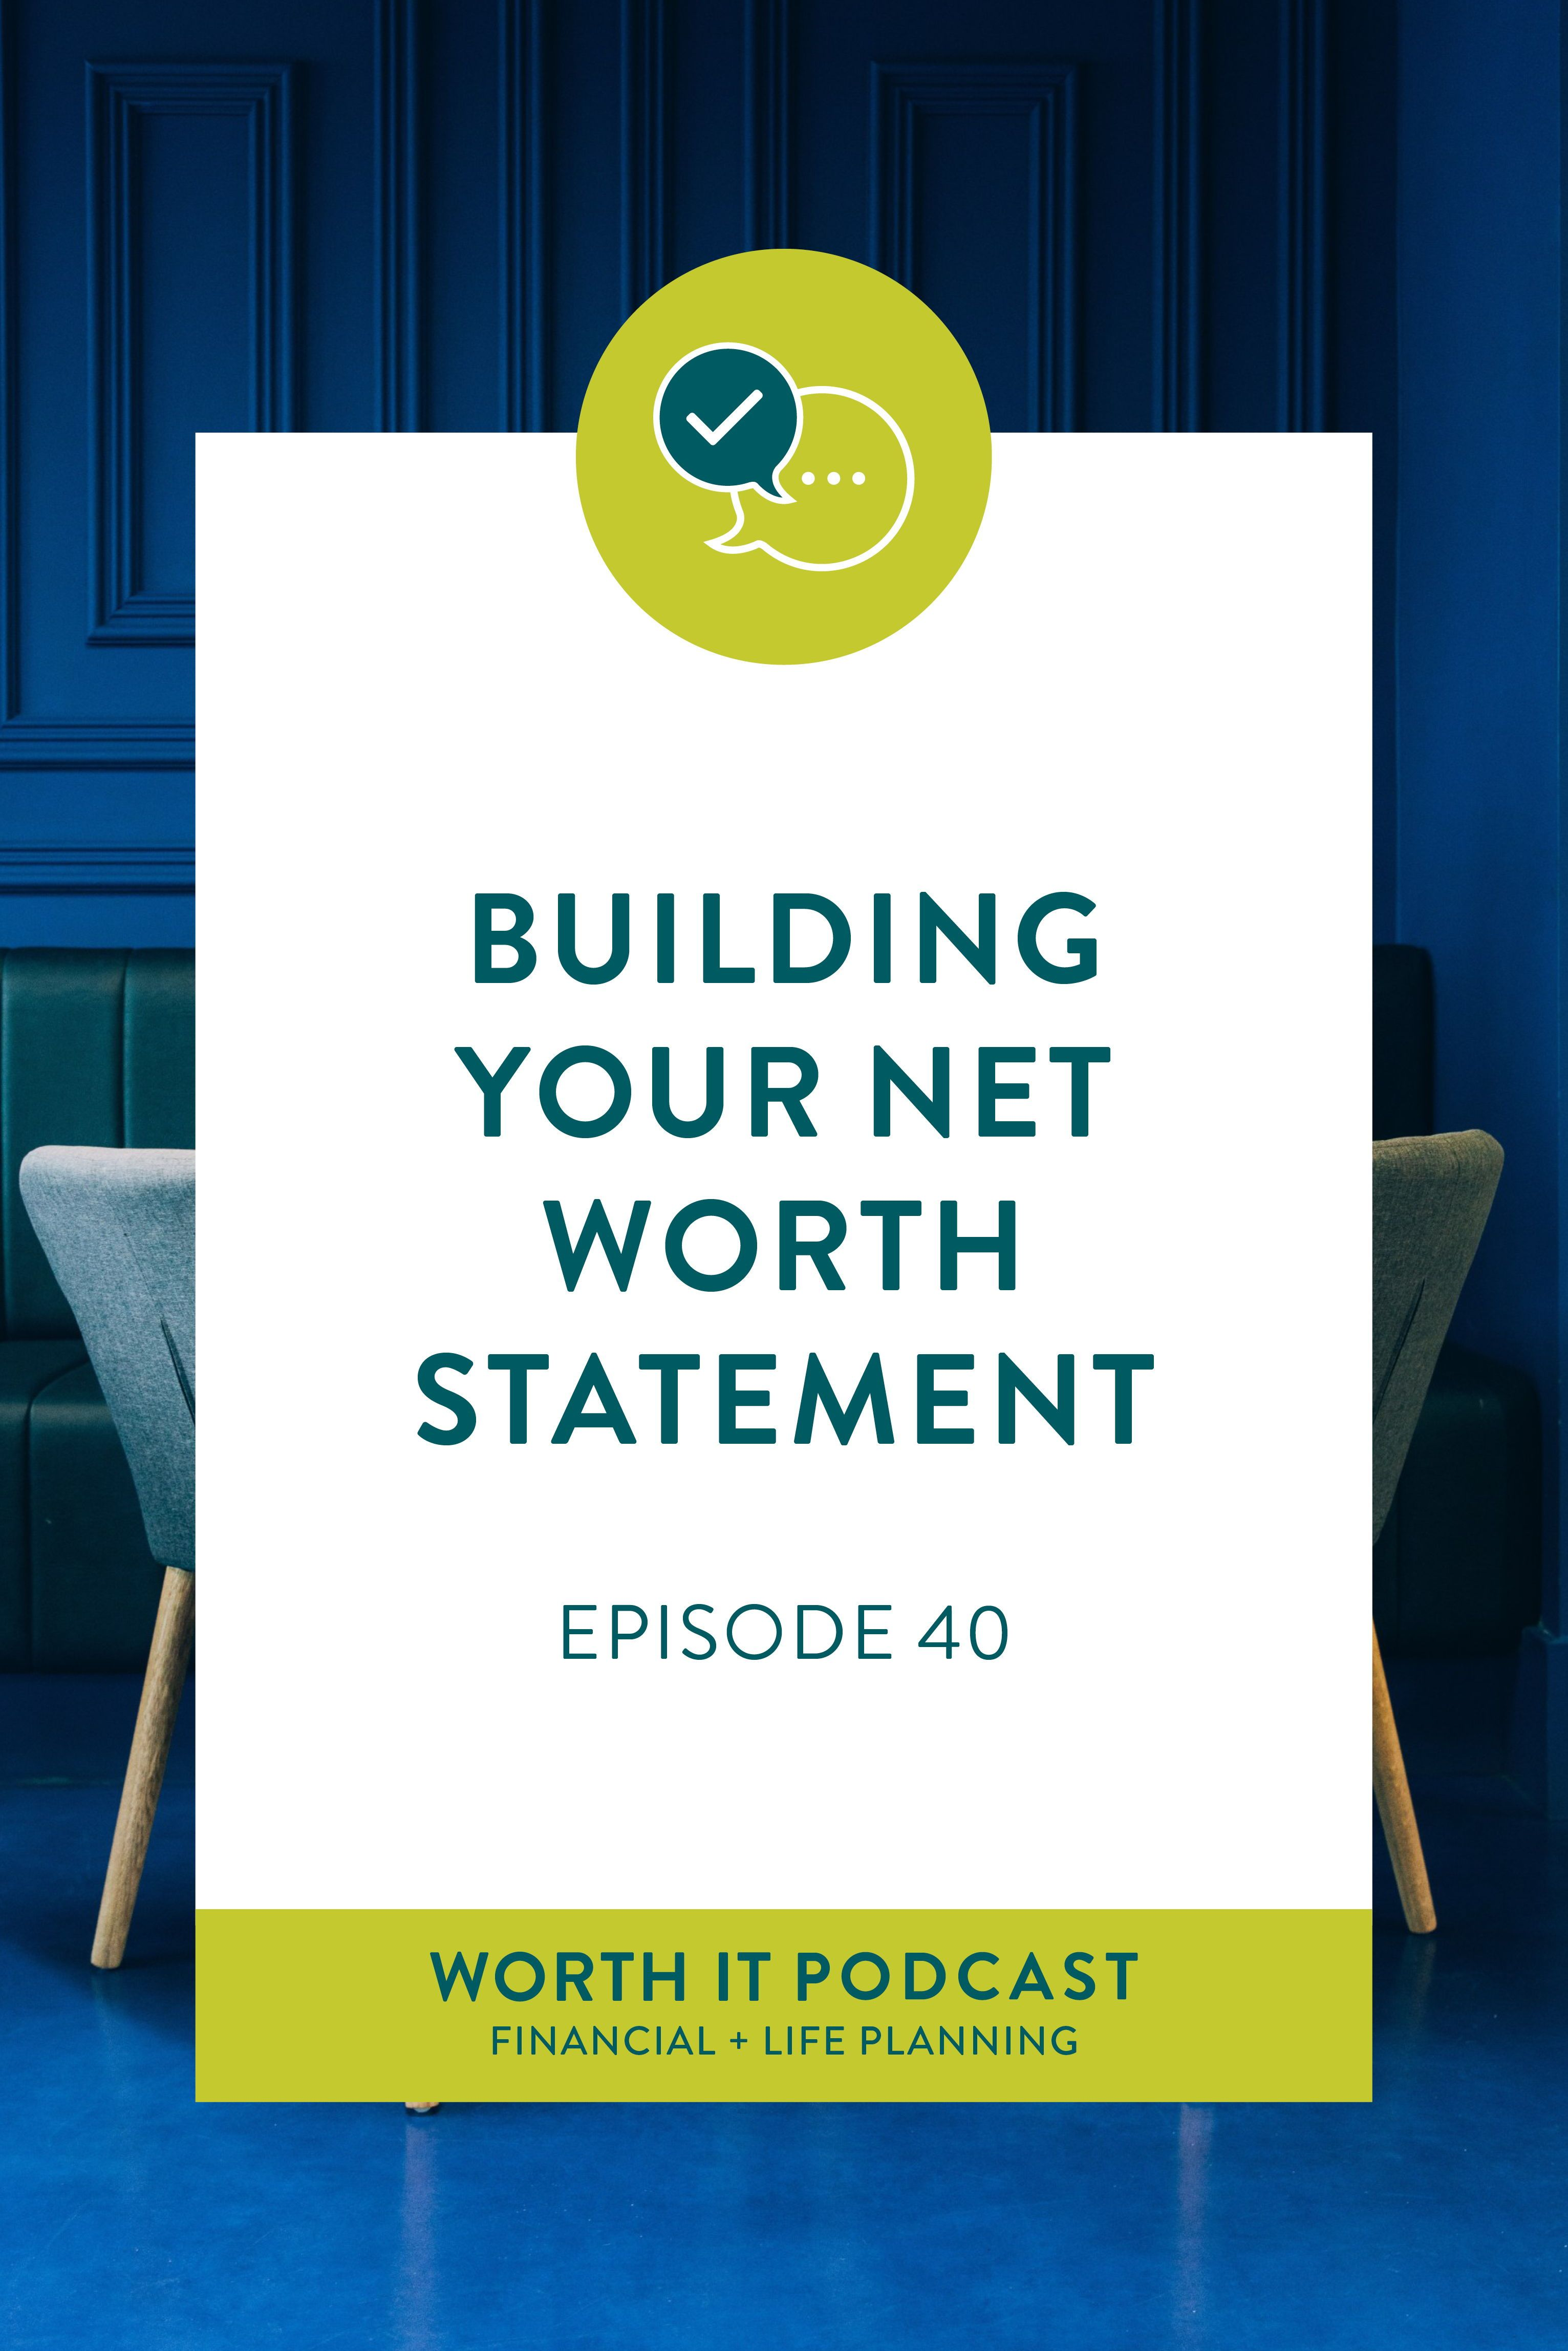 Building Your Net Worth Statement Episode 40